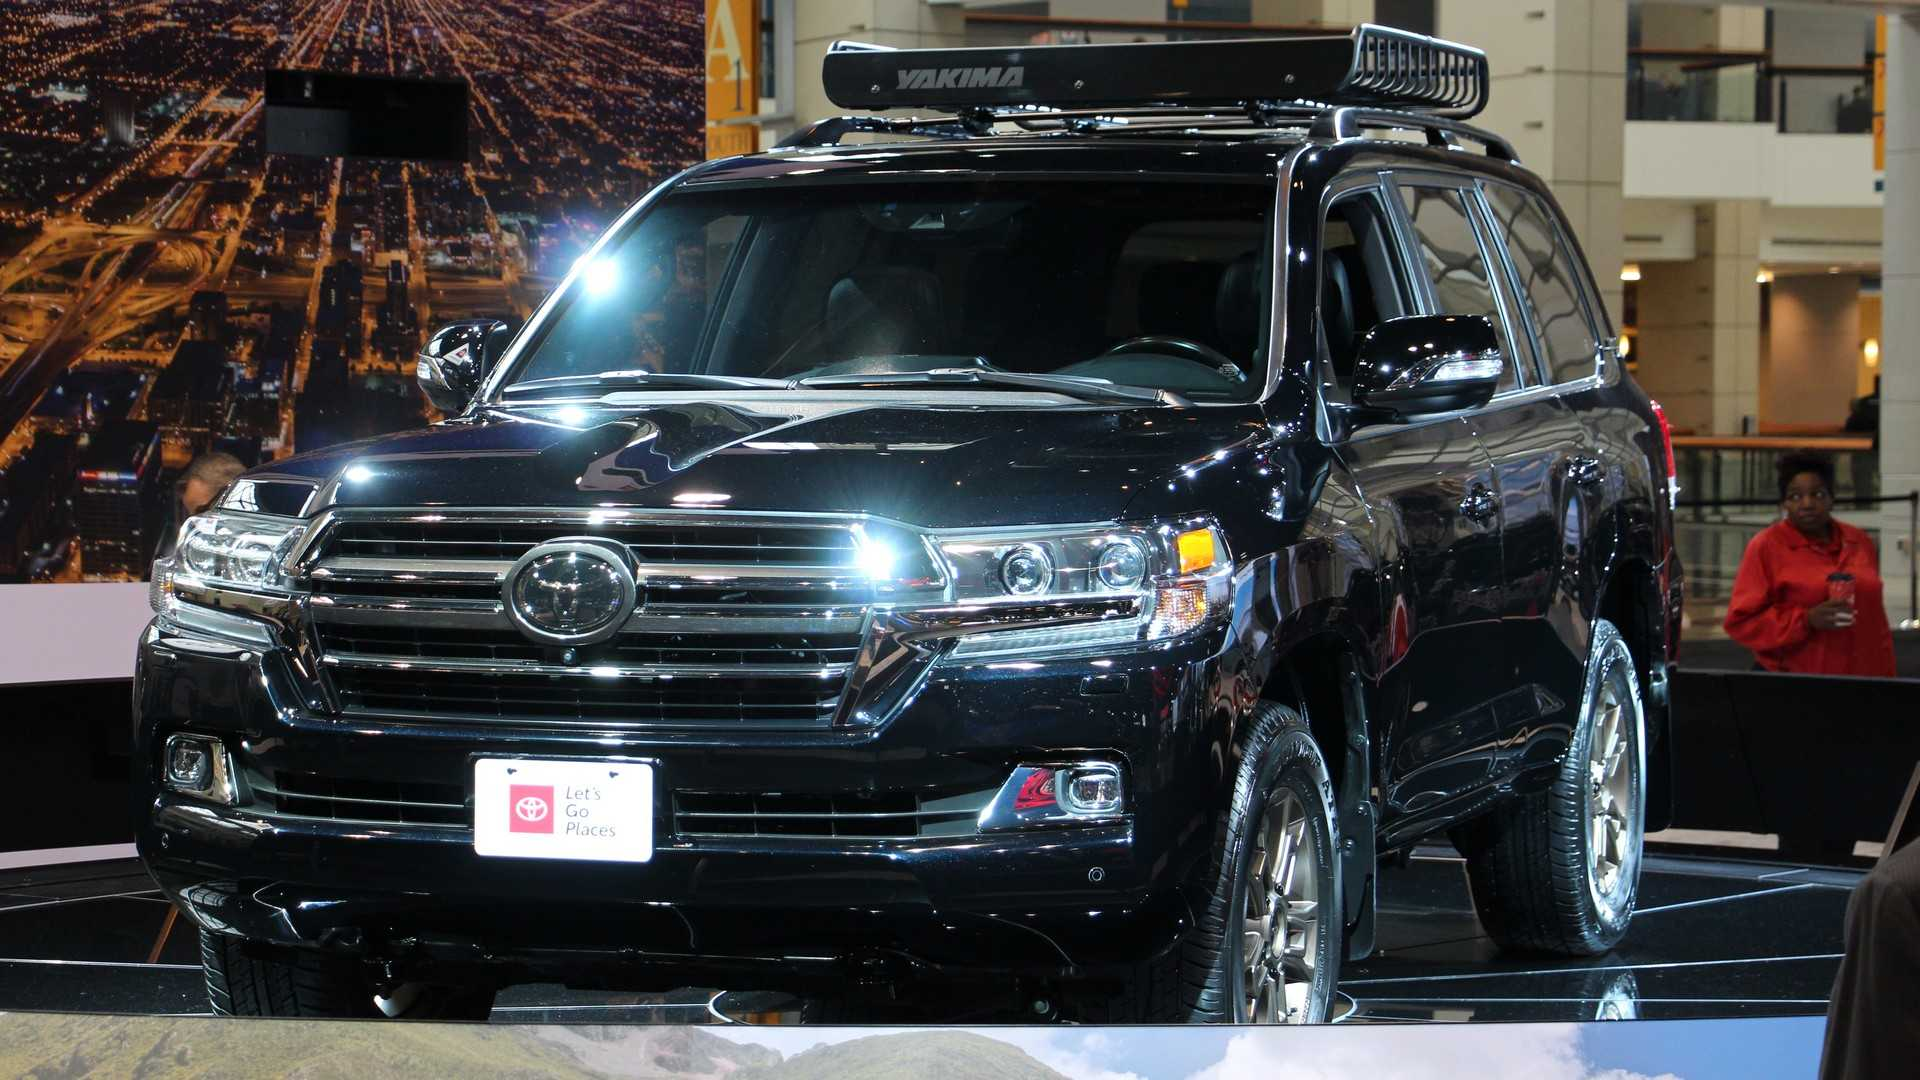 71 All New Toyota Land Cruiser 2020 Configurations